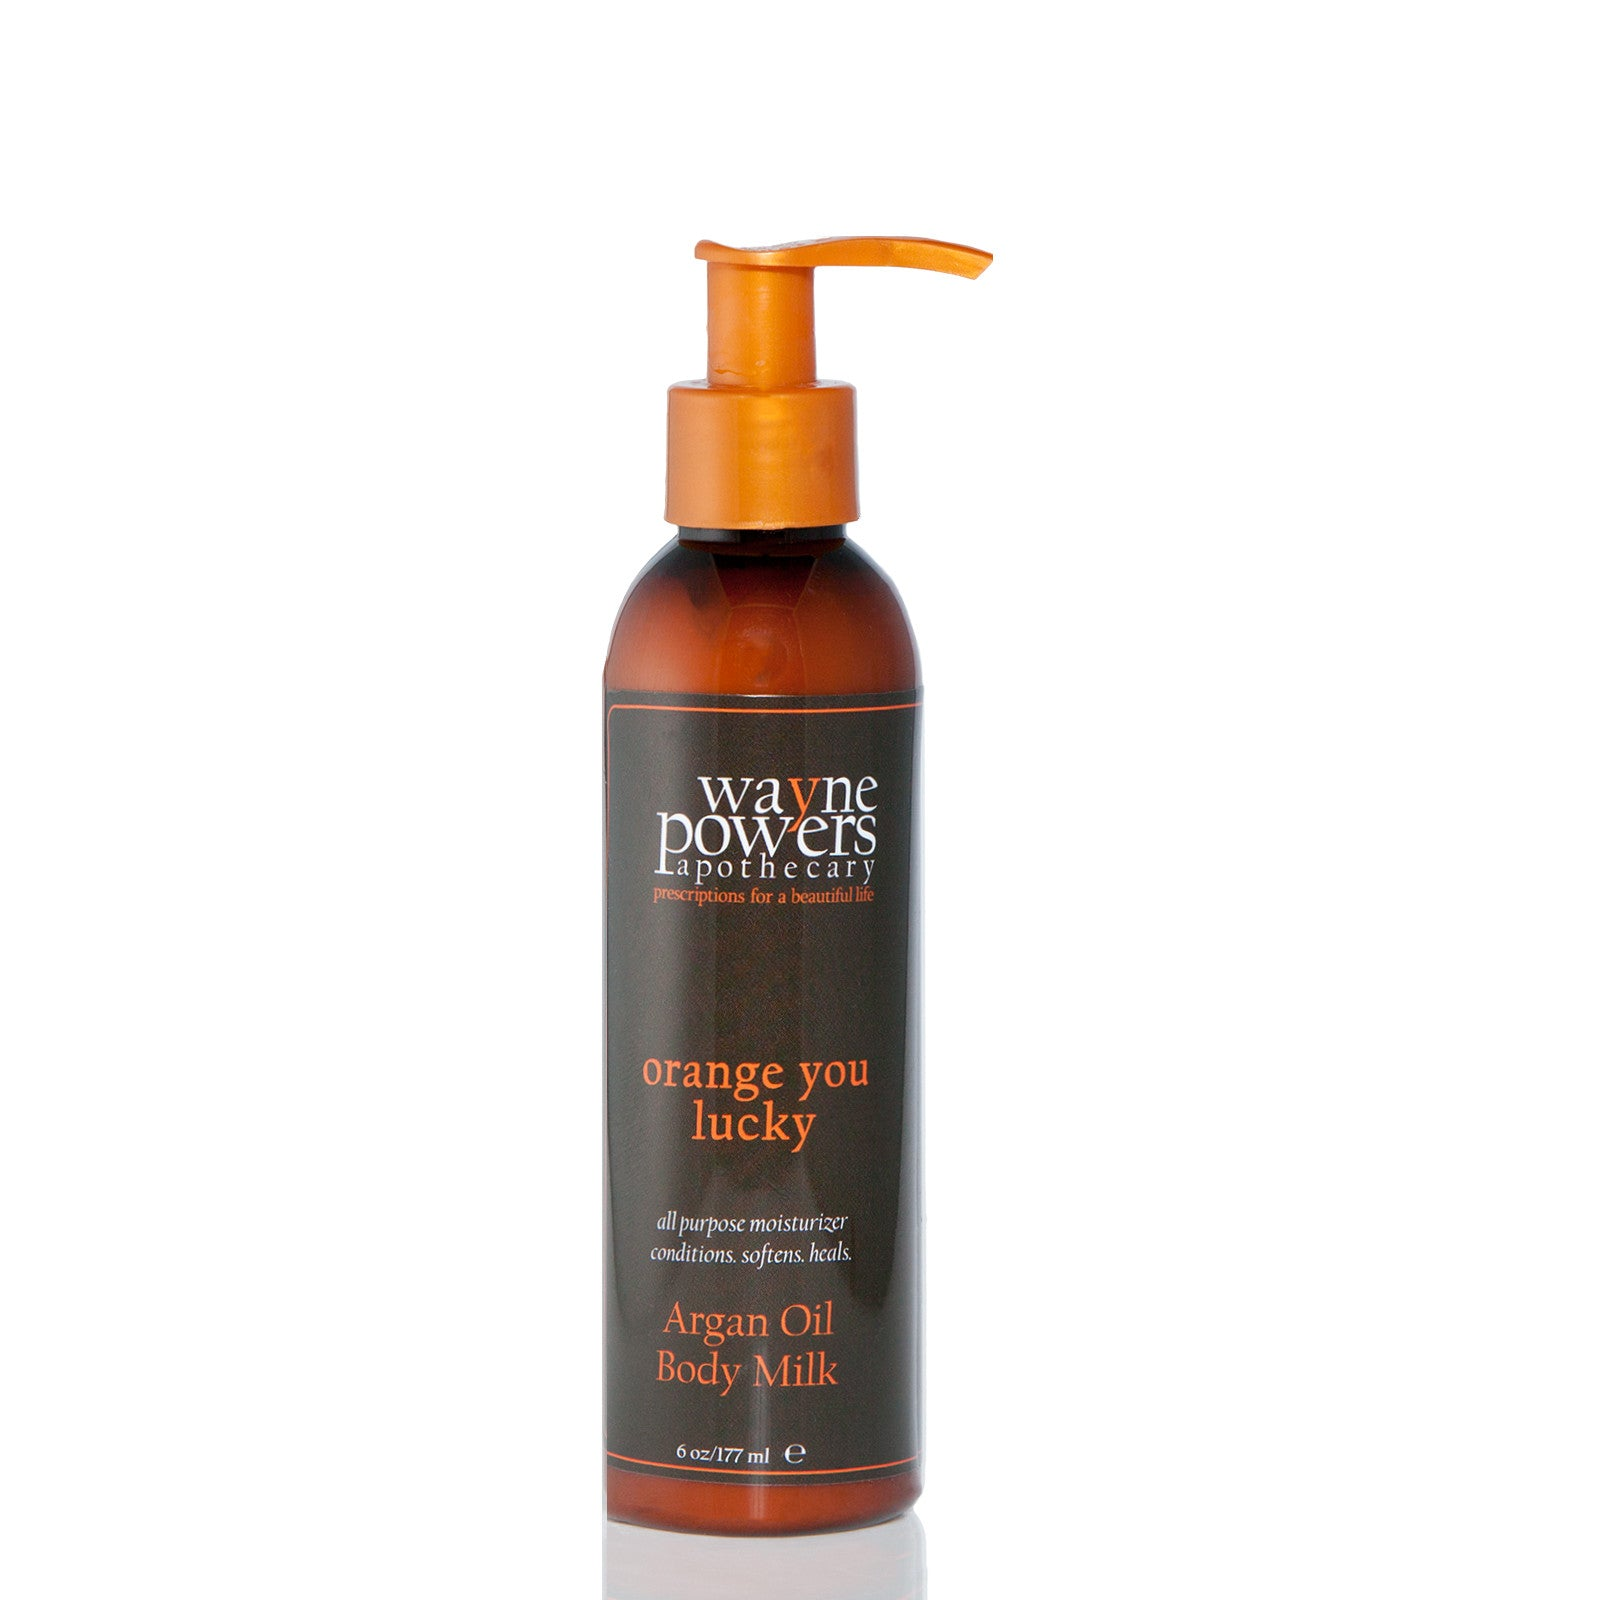 Orange You Lucky Argan Oil Body Milk by Wayne Powers Apothecary